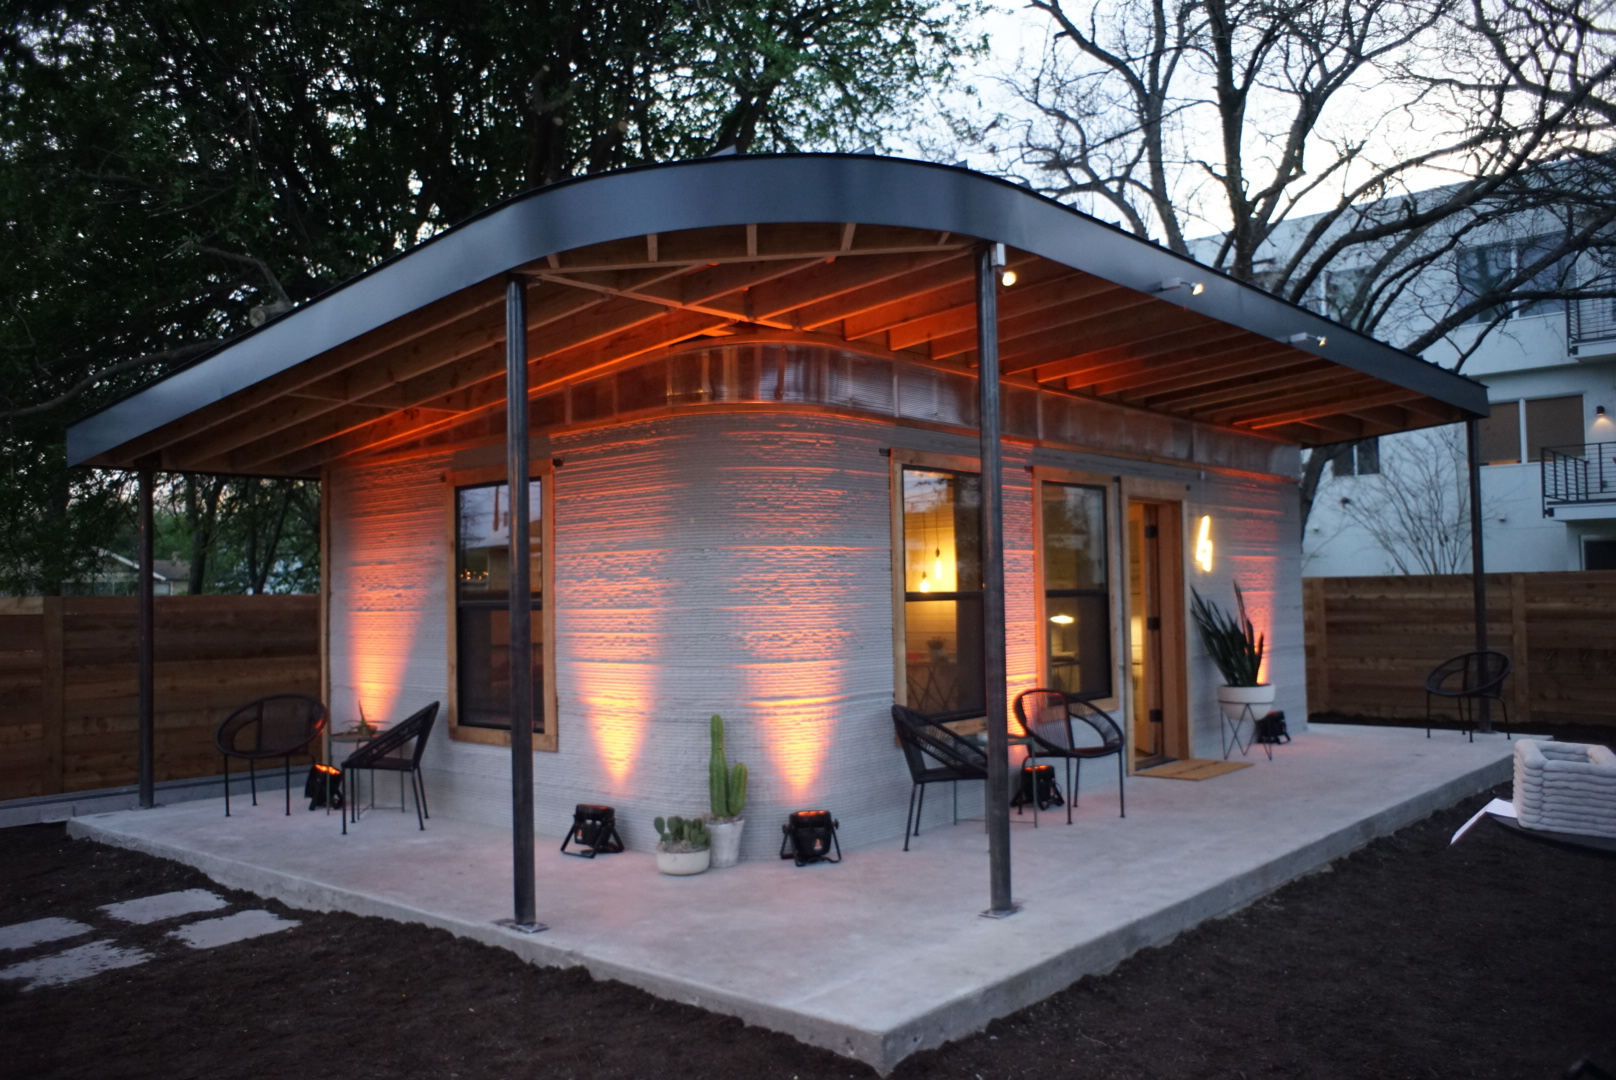 An image of ICON's first permitted 3D-printed home in the US.